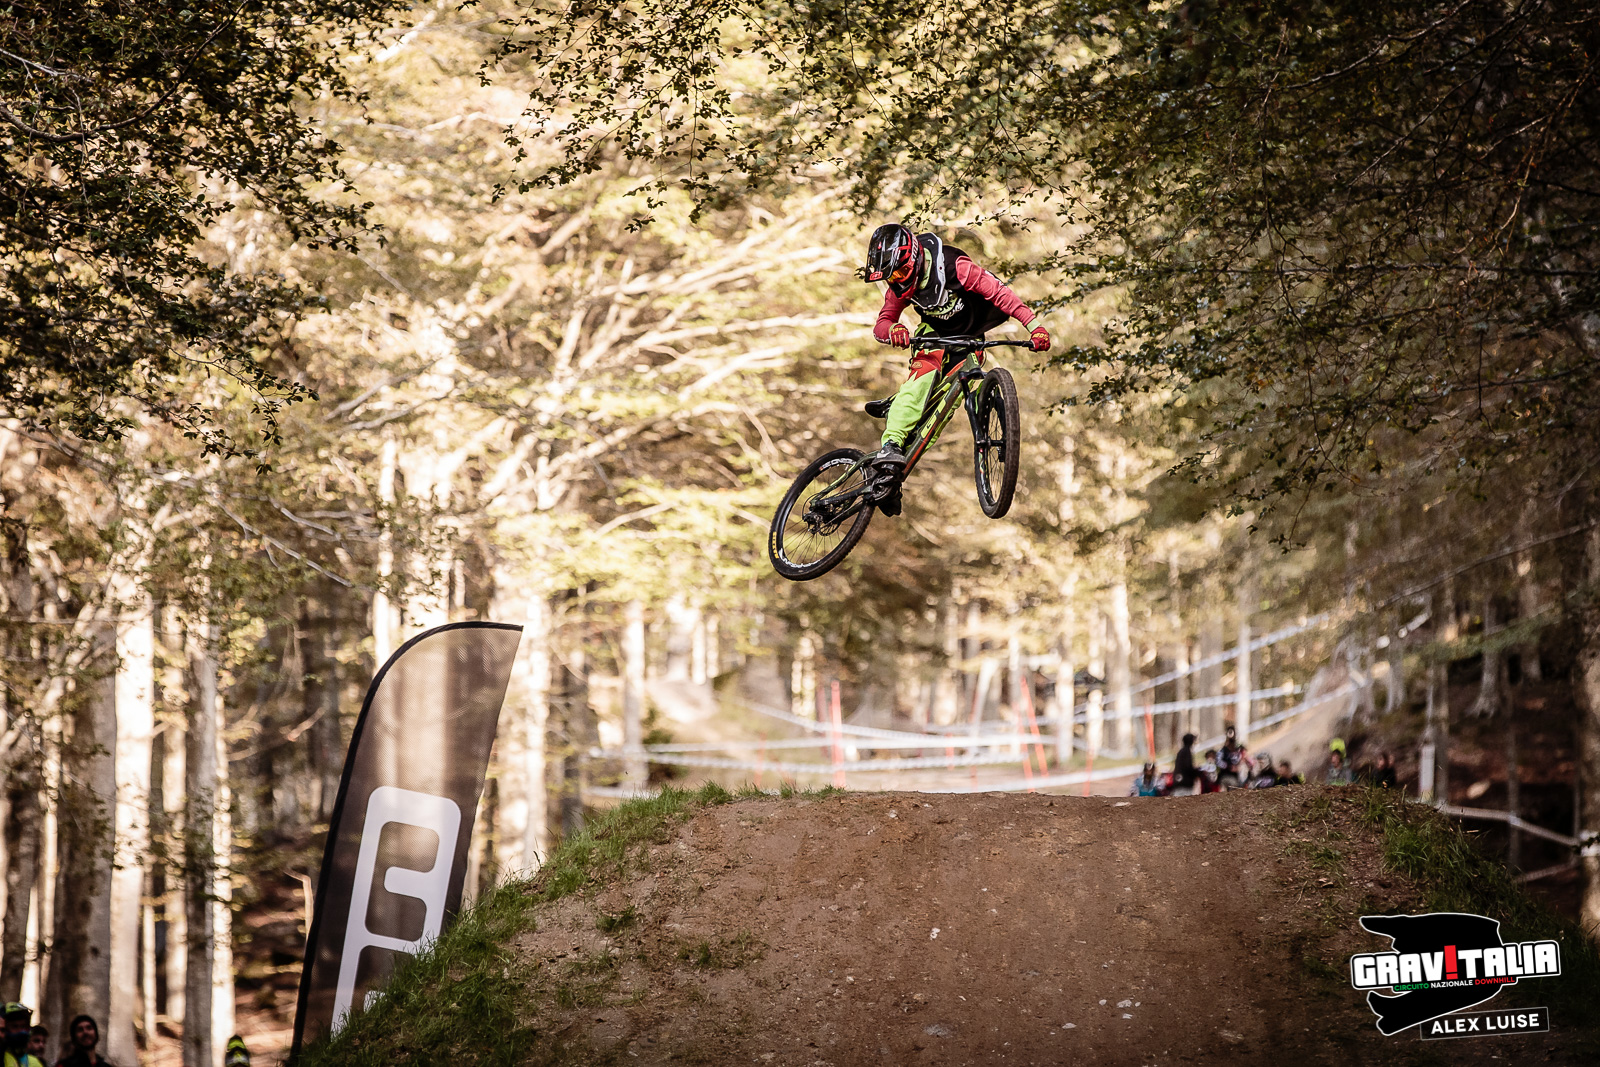 monte_amiata_whip_contest_09